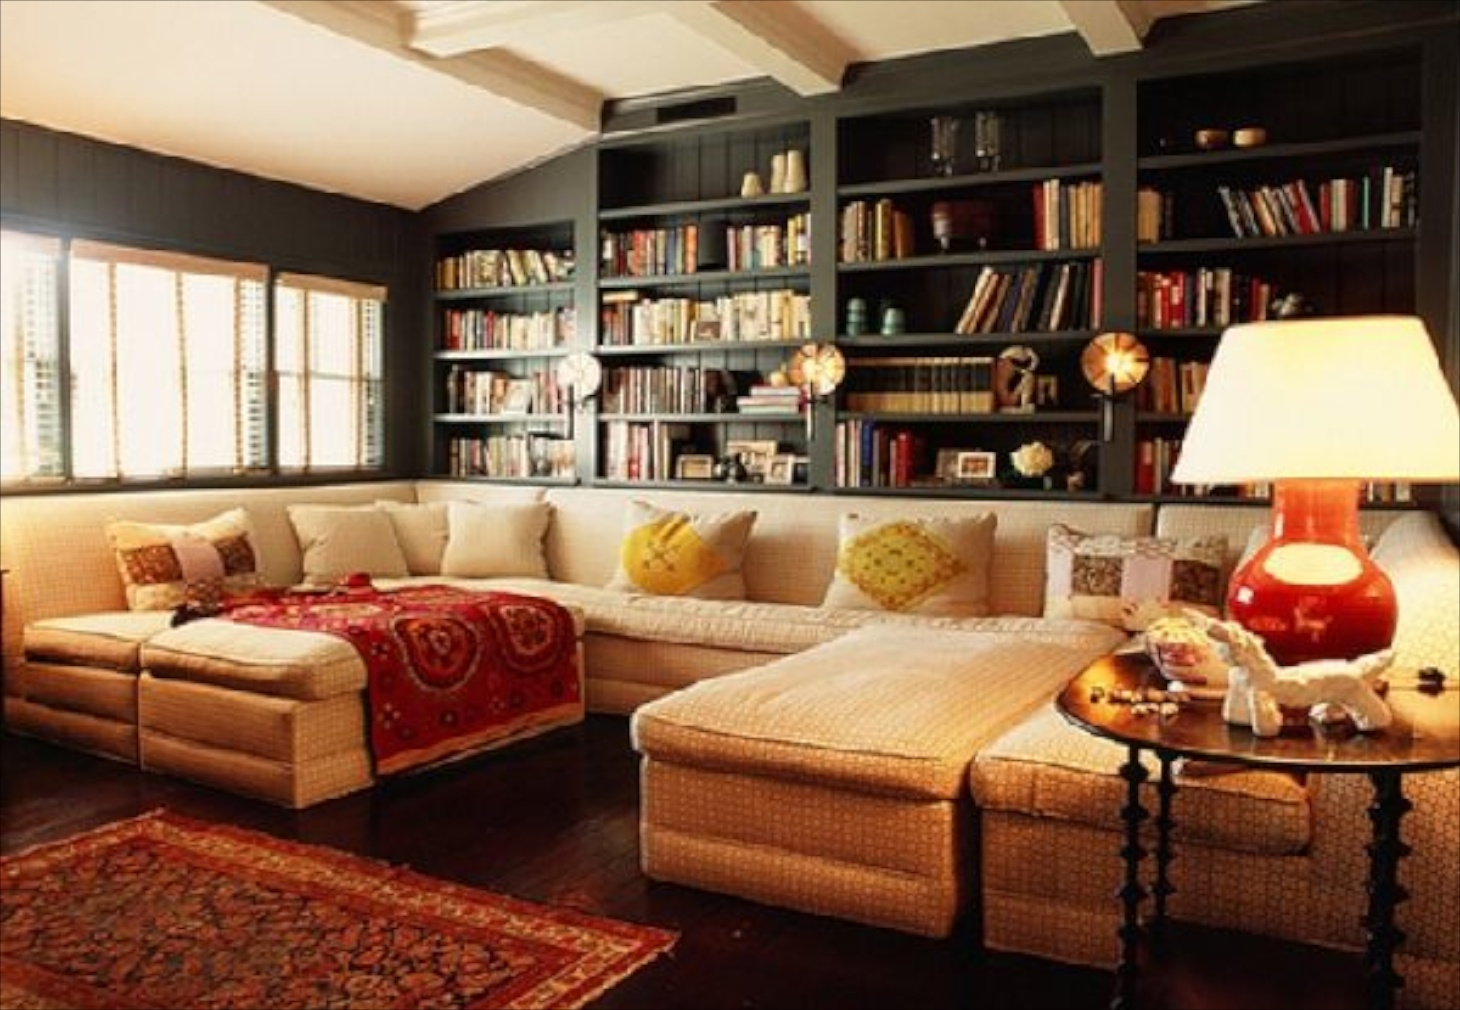 23 sofas and bookcase ideas in cozy living room design for Homey living room designs